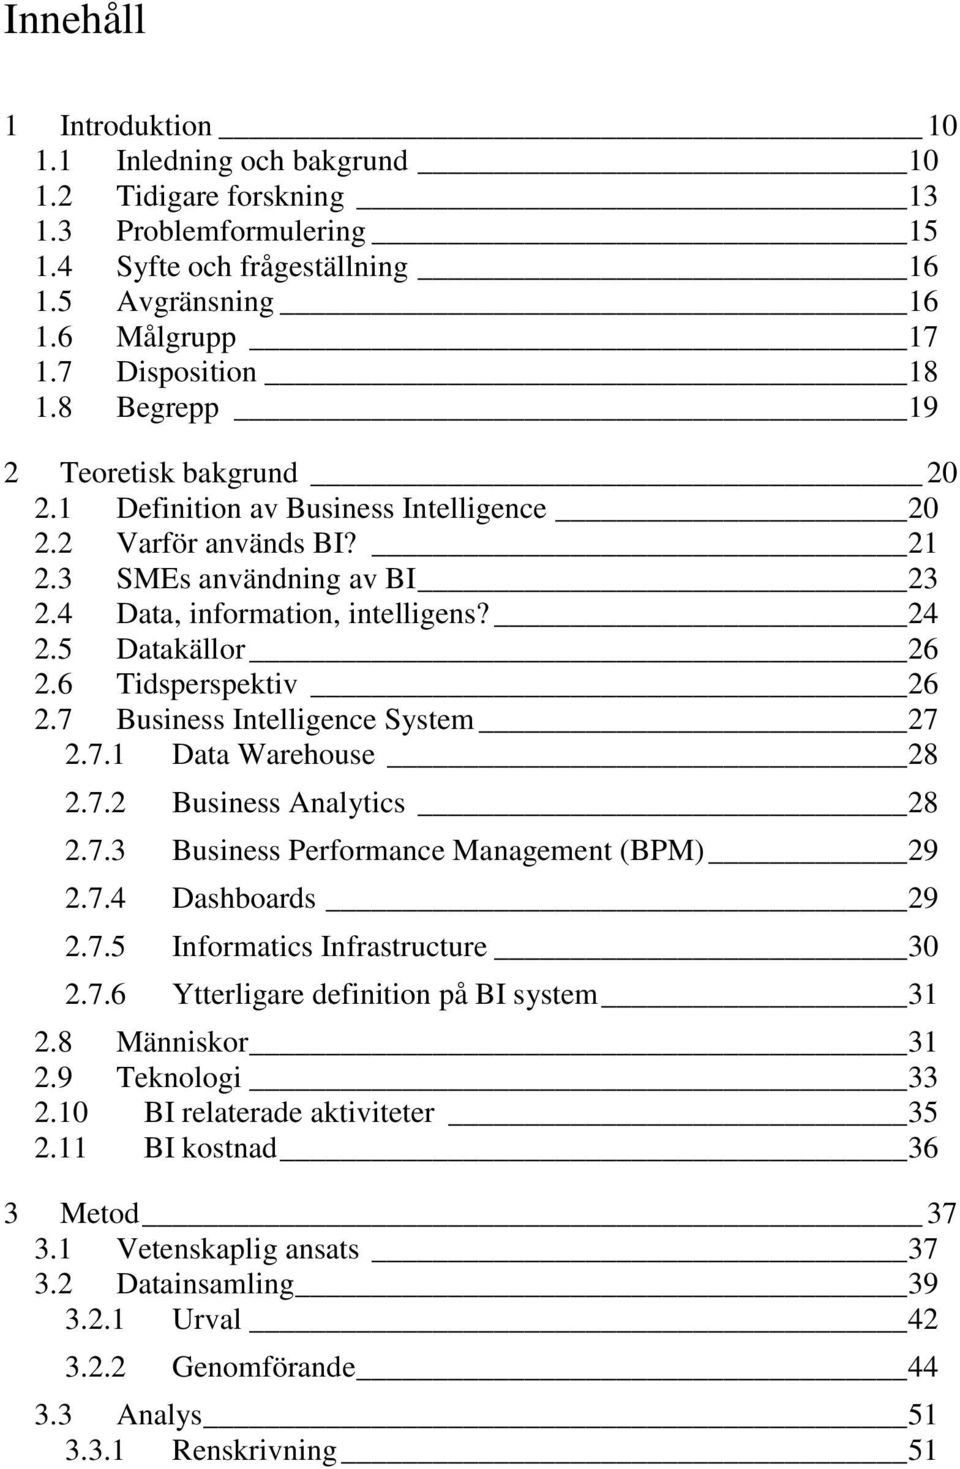 6 Tidsperspektiv 26 2.7 Business Intelligence System 27 2.7.1 Data Warehouse 28 2.7.2 Business Analytics 28 2.7.3 Business Performance Management (BPM) 29 2.7.4 Dashboards 29 2.7.5 Informatics Infrastructure 30 2.